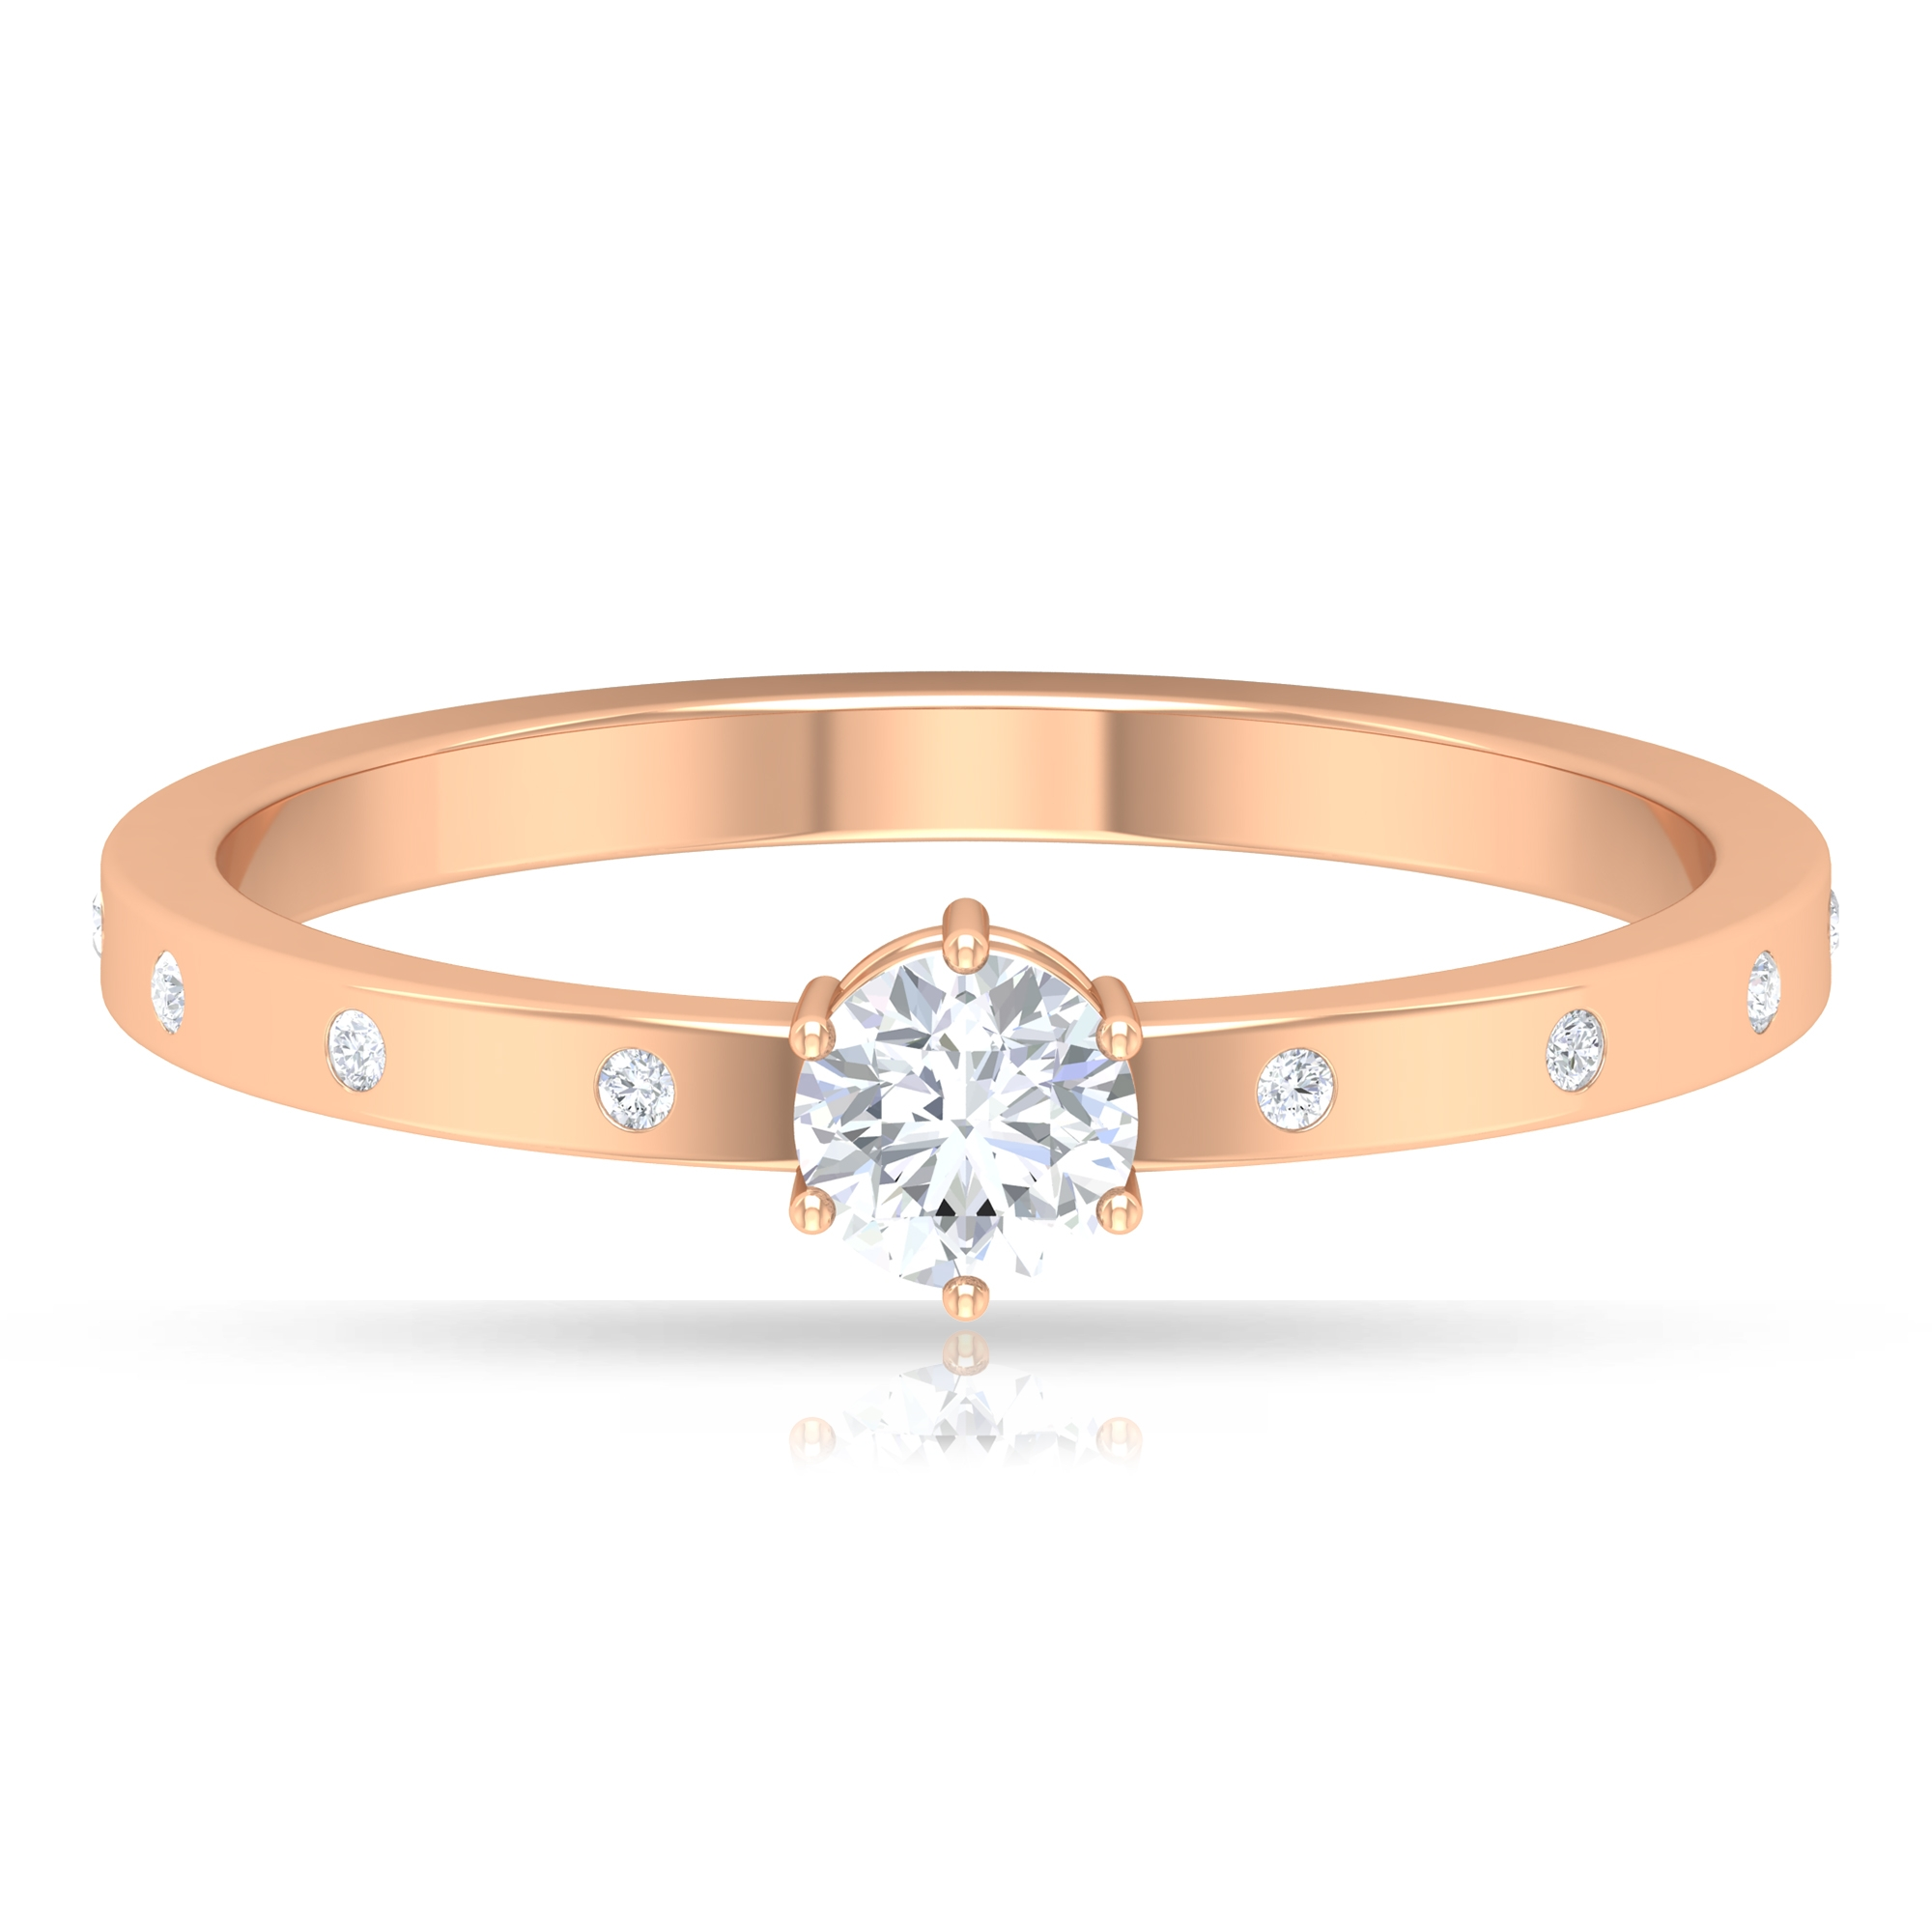 1/4 CT Round Cut Diamond Solitaire Ring in 6 Prong Setting with Sleek Accent